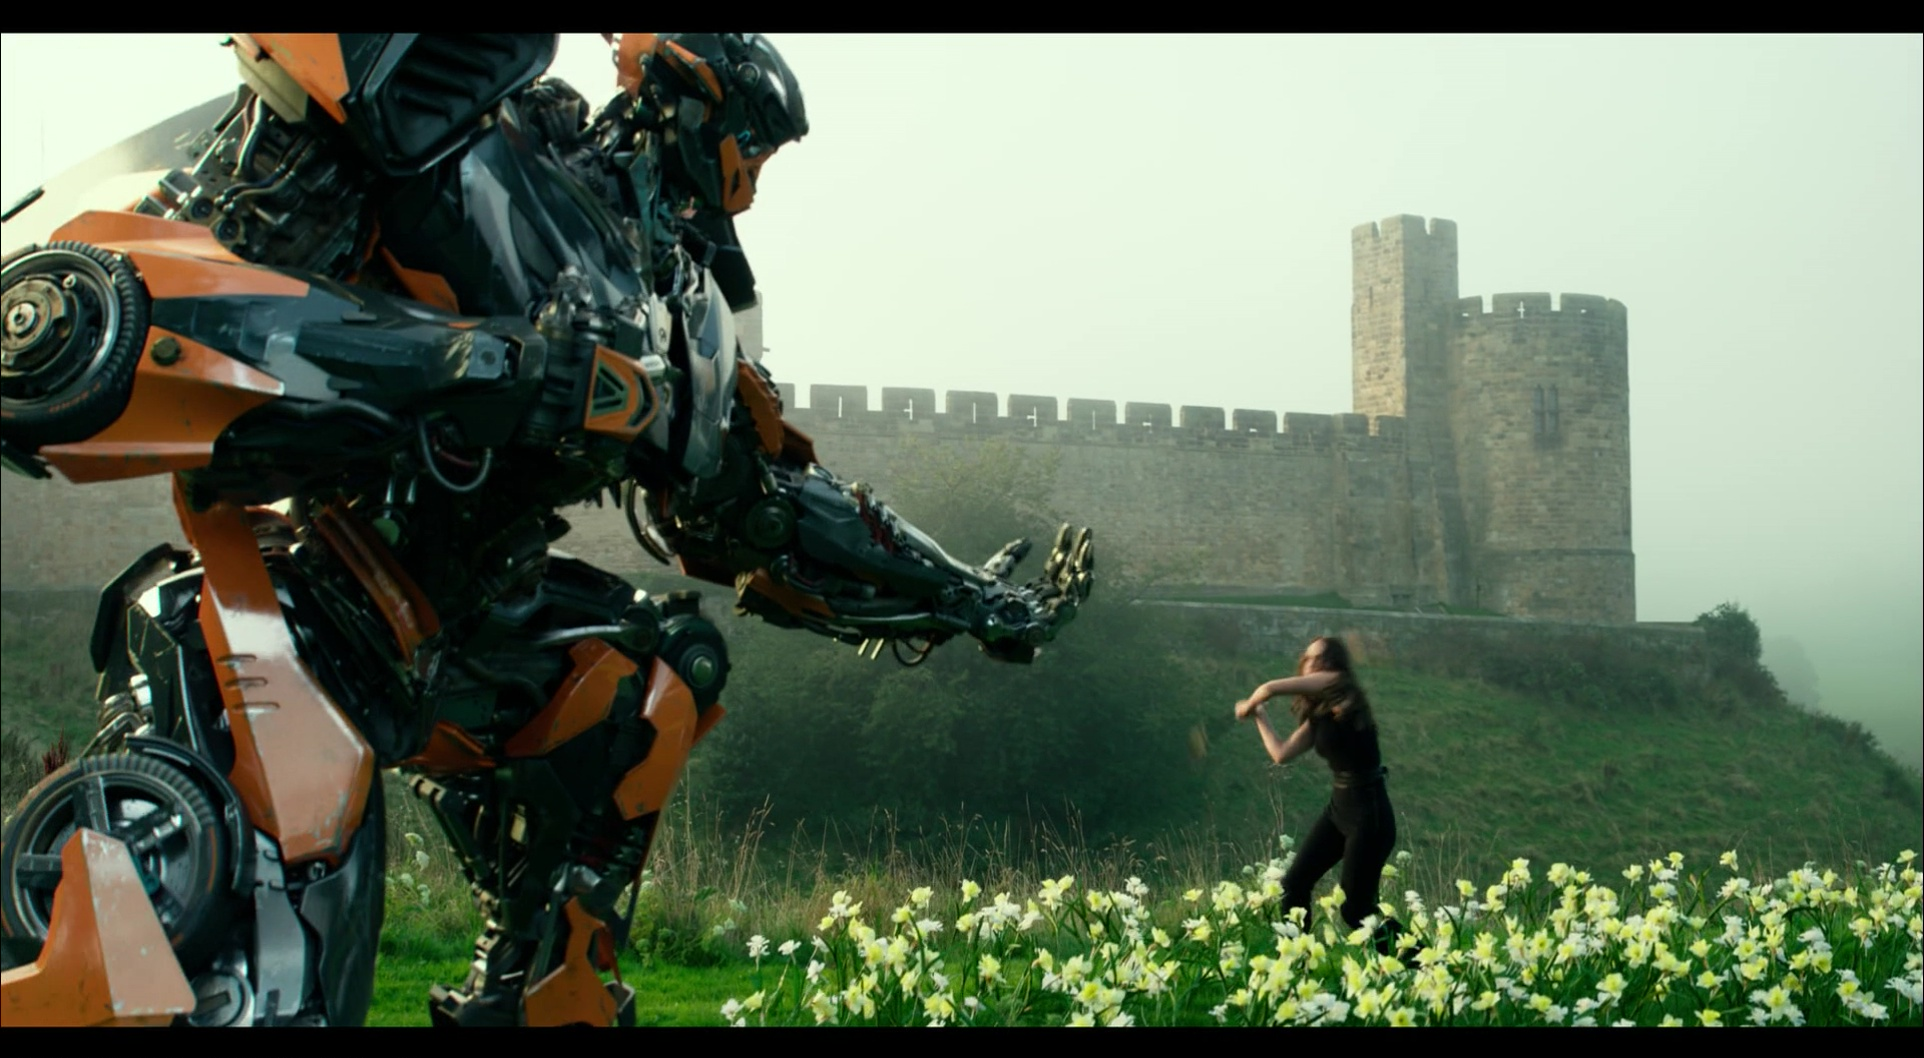 Hot Rod in Autobot form holding hand out to woman in field of flowers